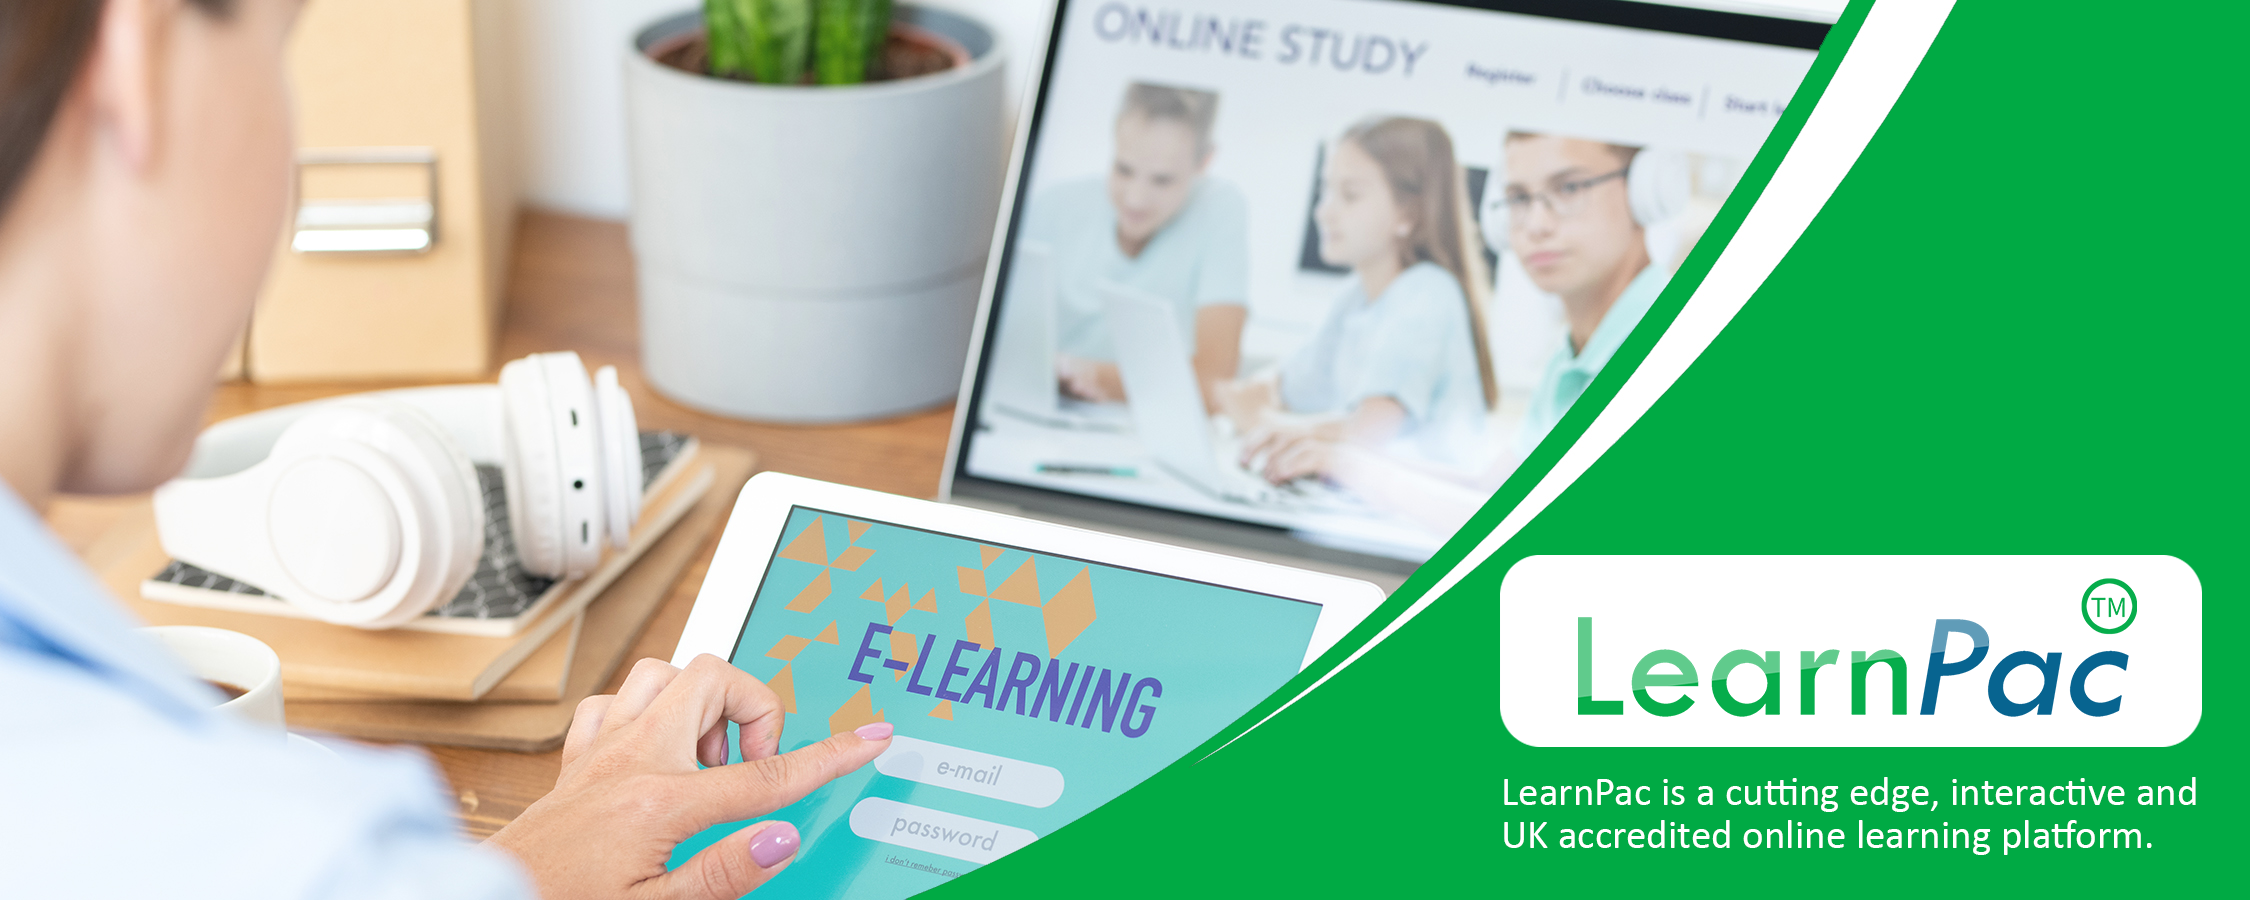 Archiving and Records Management - Online Learning Courses - E-Learning Courses - LearnPac Systems UK -